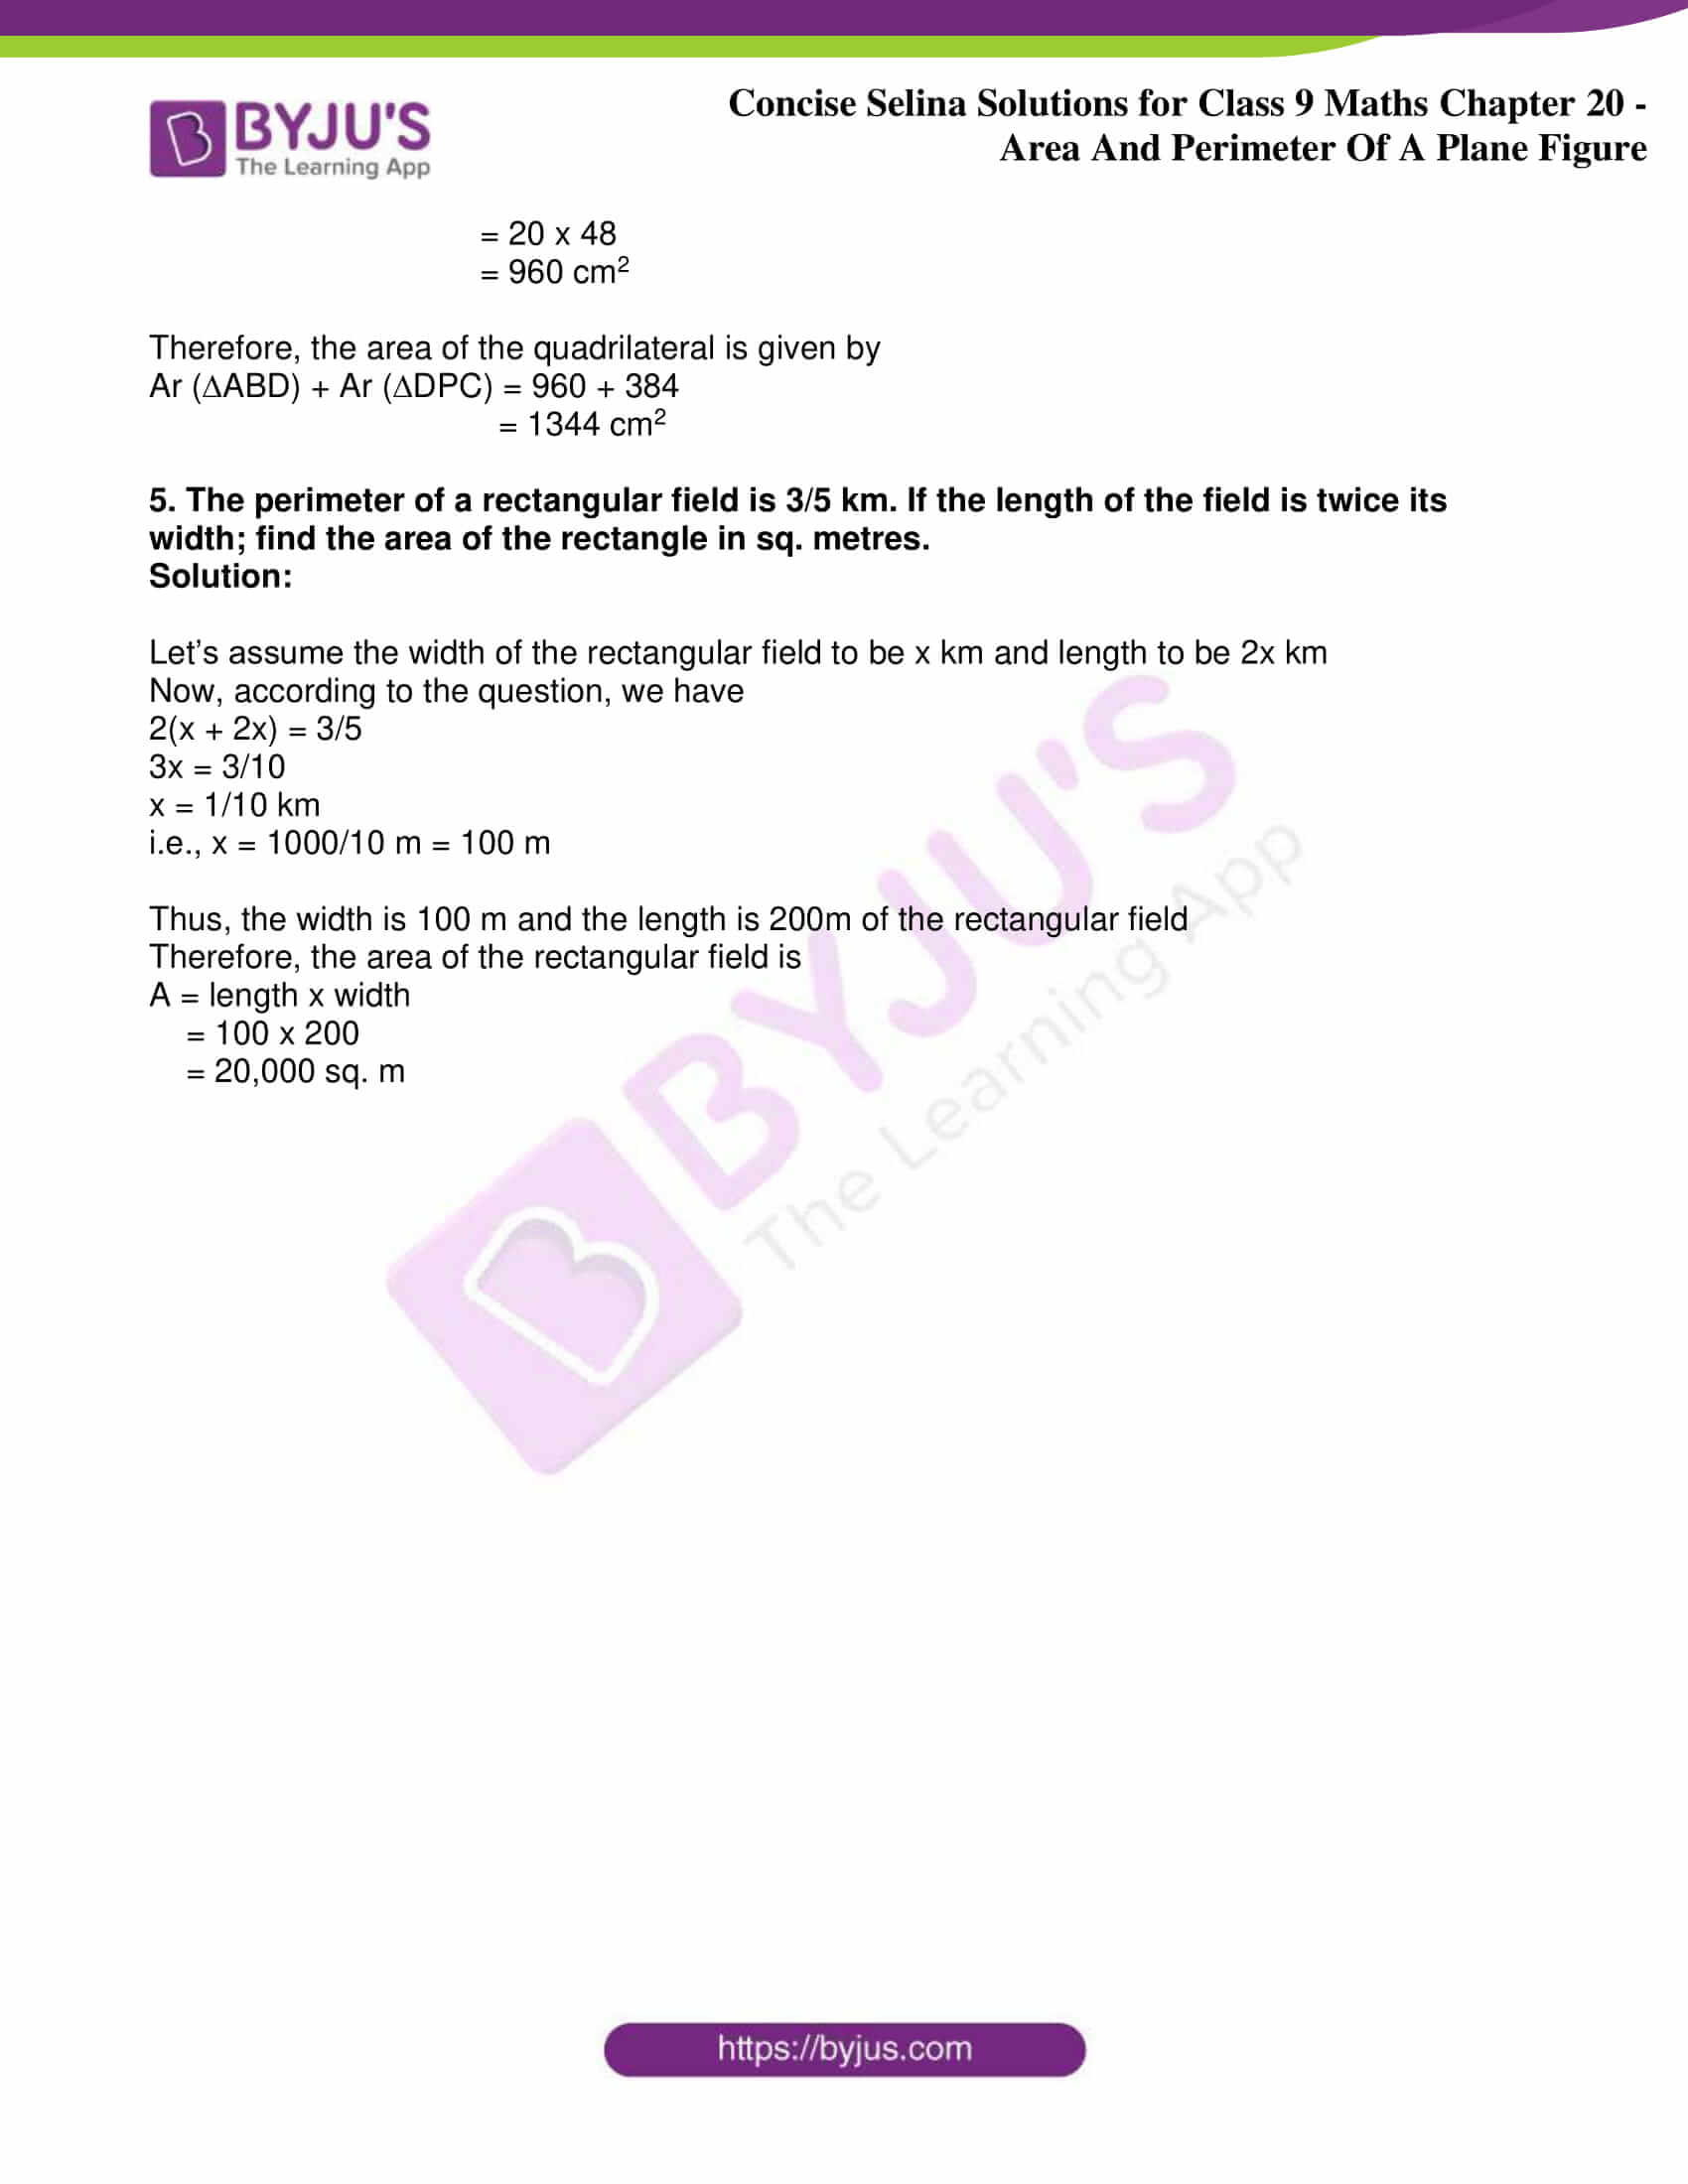 icse class 9 jun9 maths selina solutions chapter 20 area and perimeter of a plane figure 07